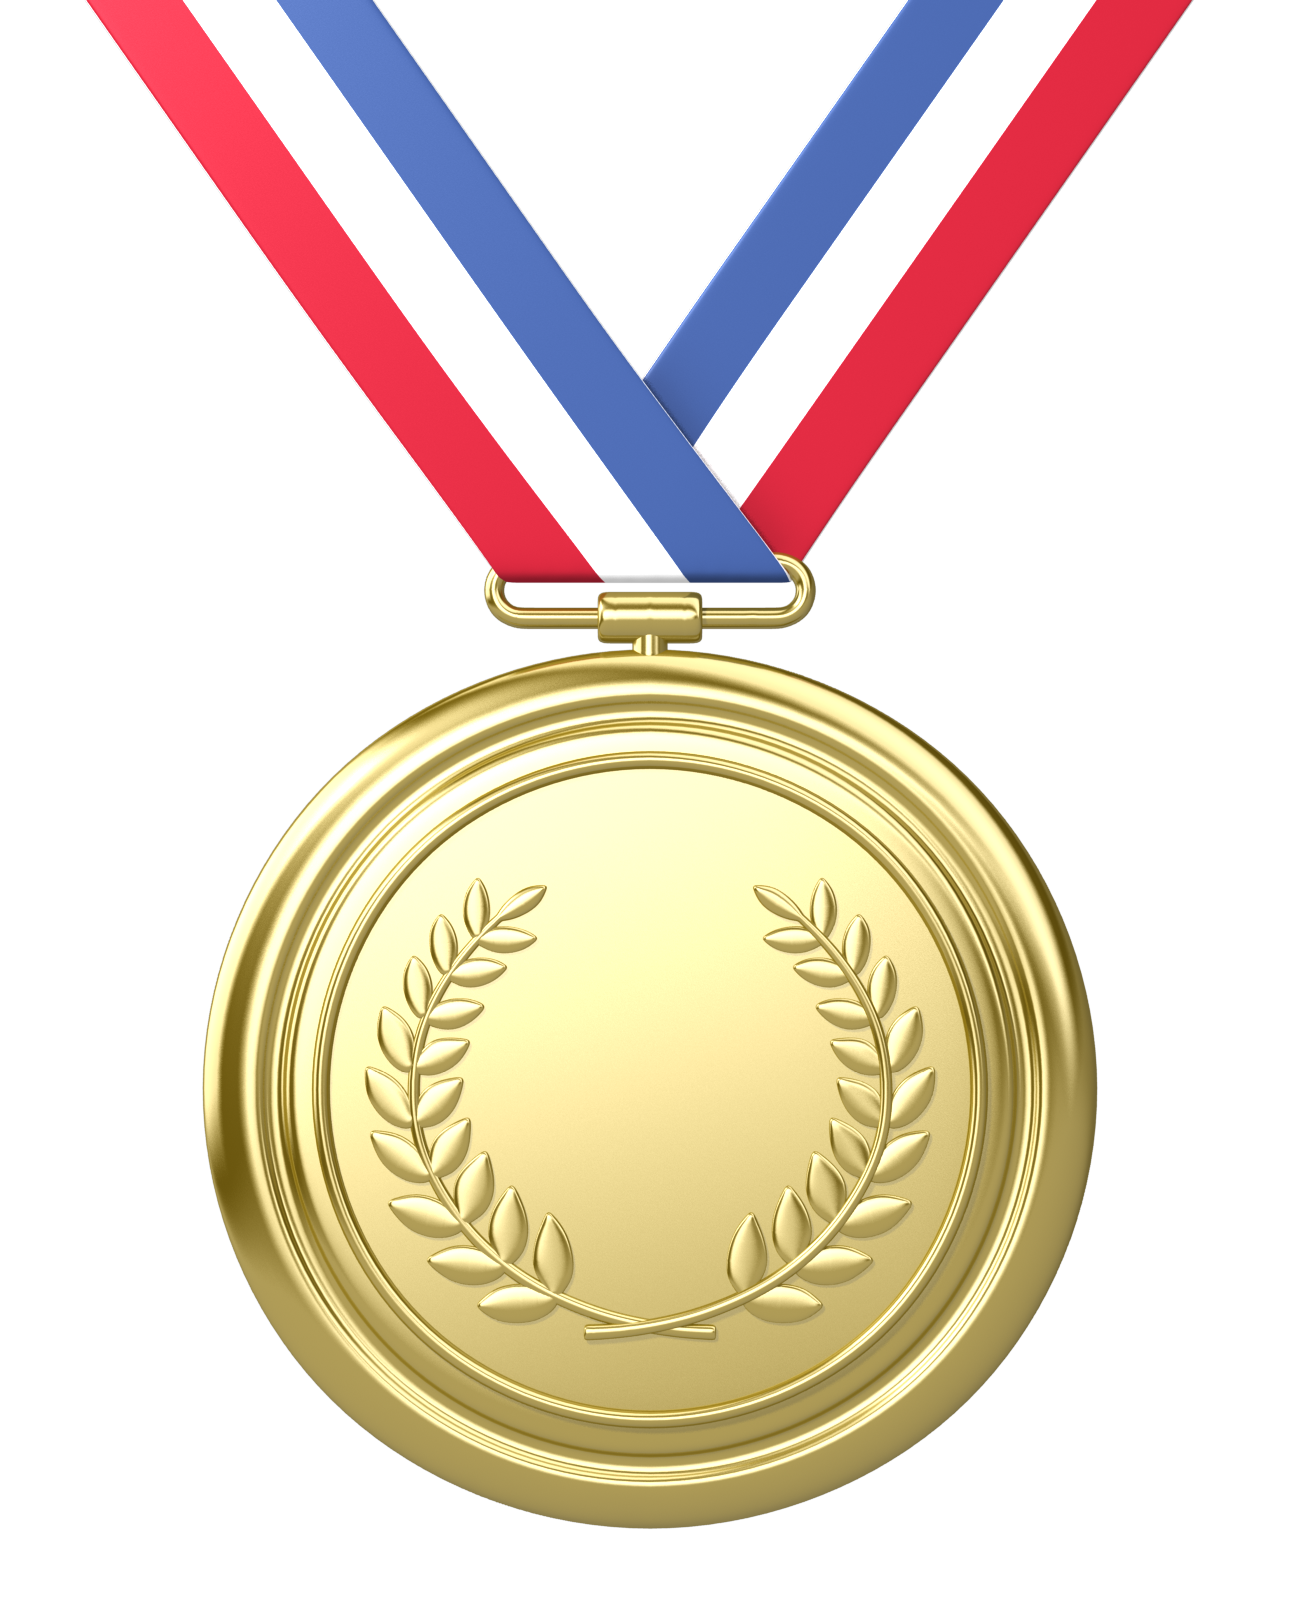 Gold Medal Clip Art At Clker